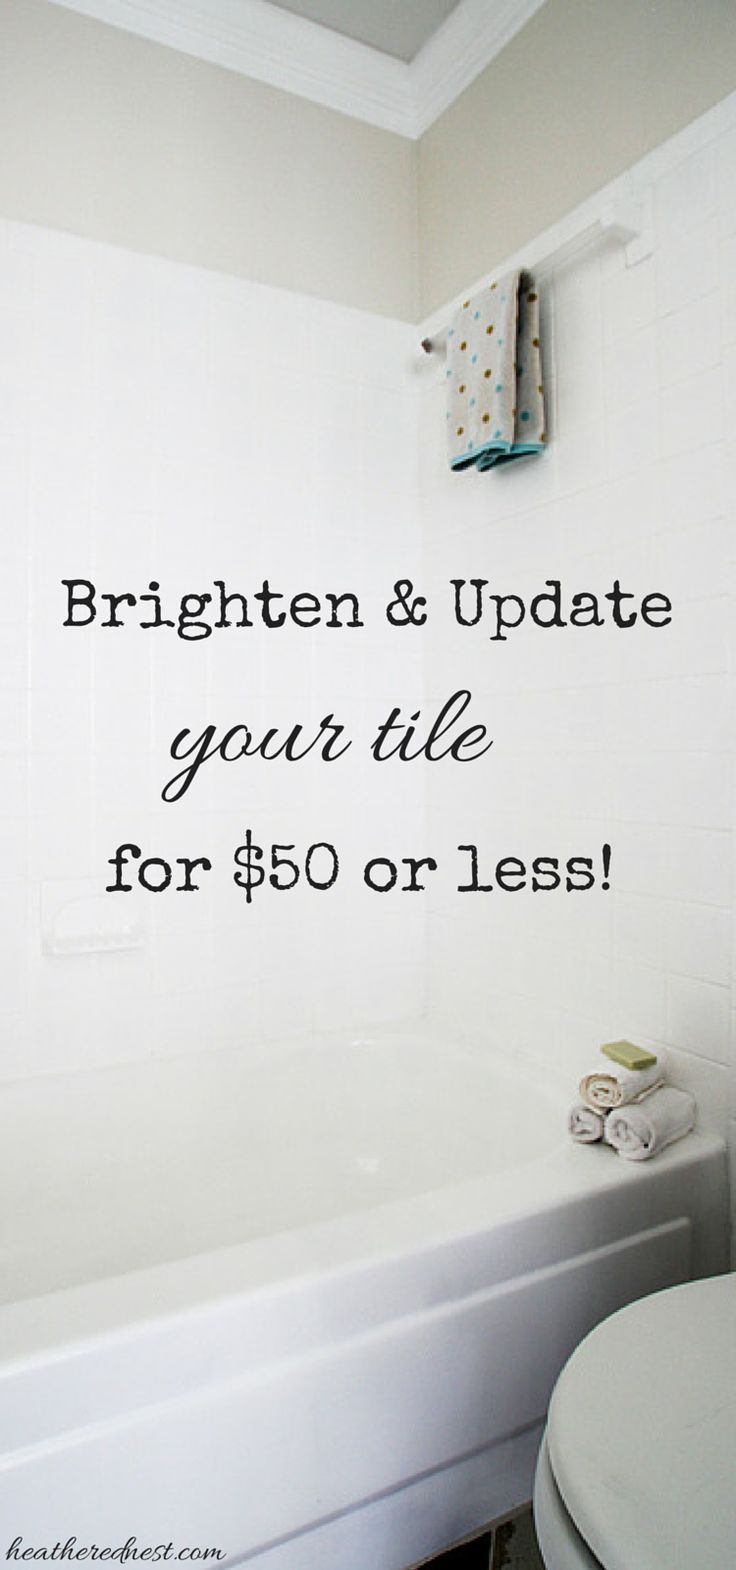 118 best Bathroom Projects images on Pinterest | Bathroom ideas ...